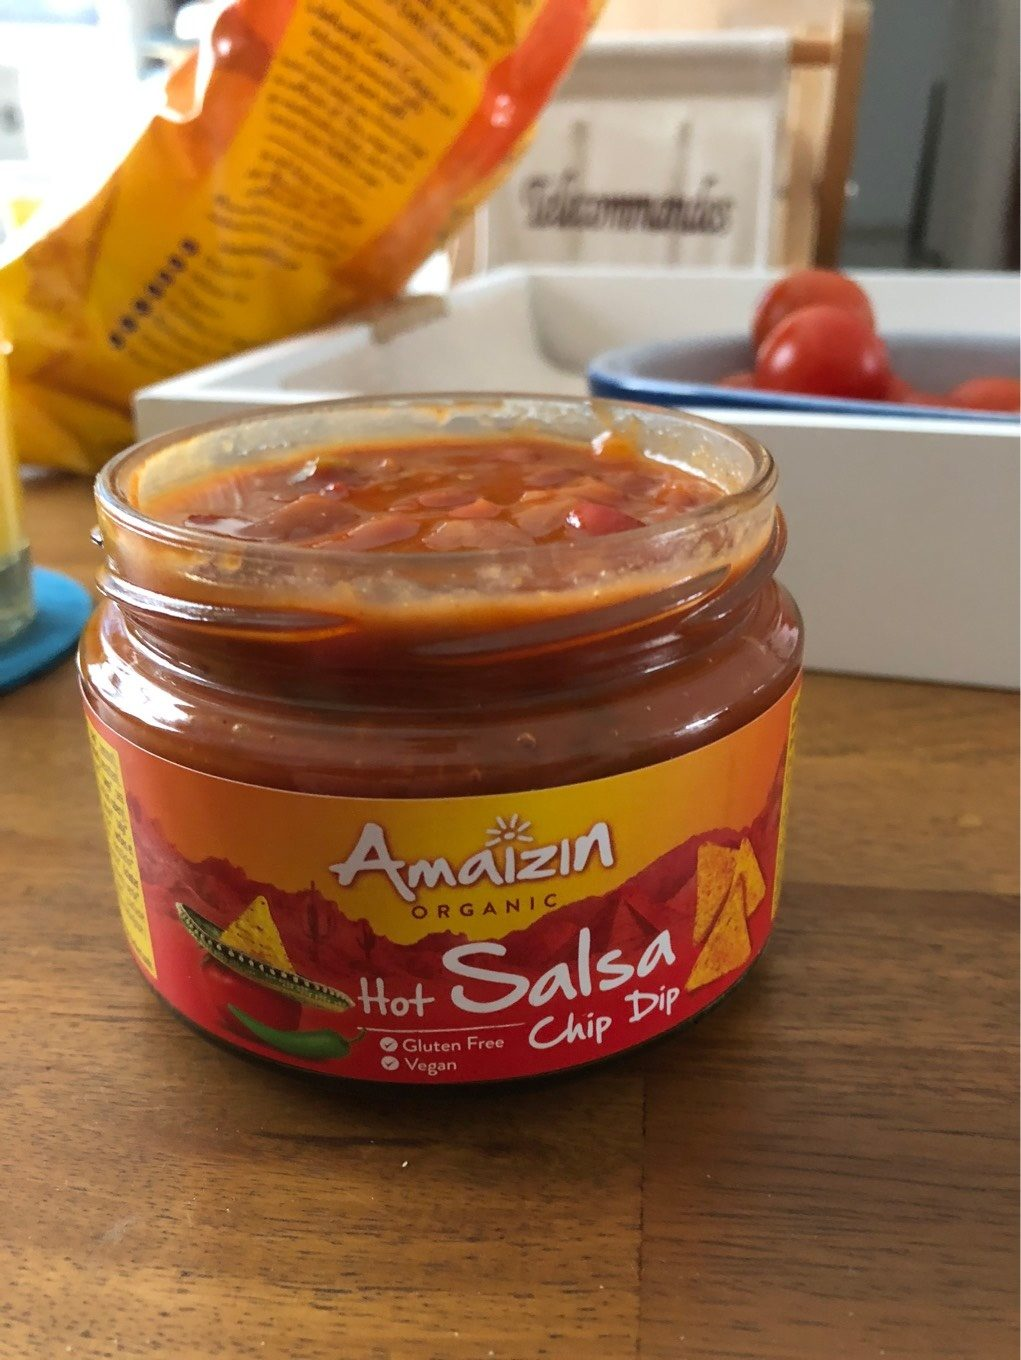 Hot salsa chip dip - Product - fr